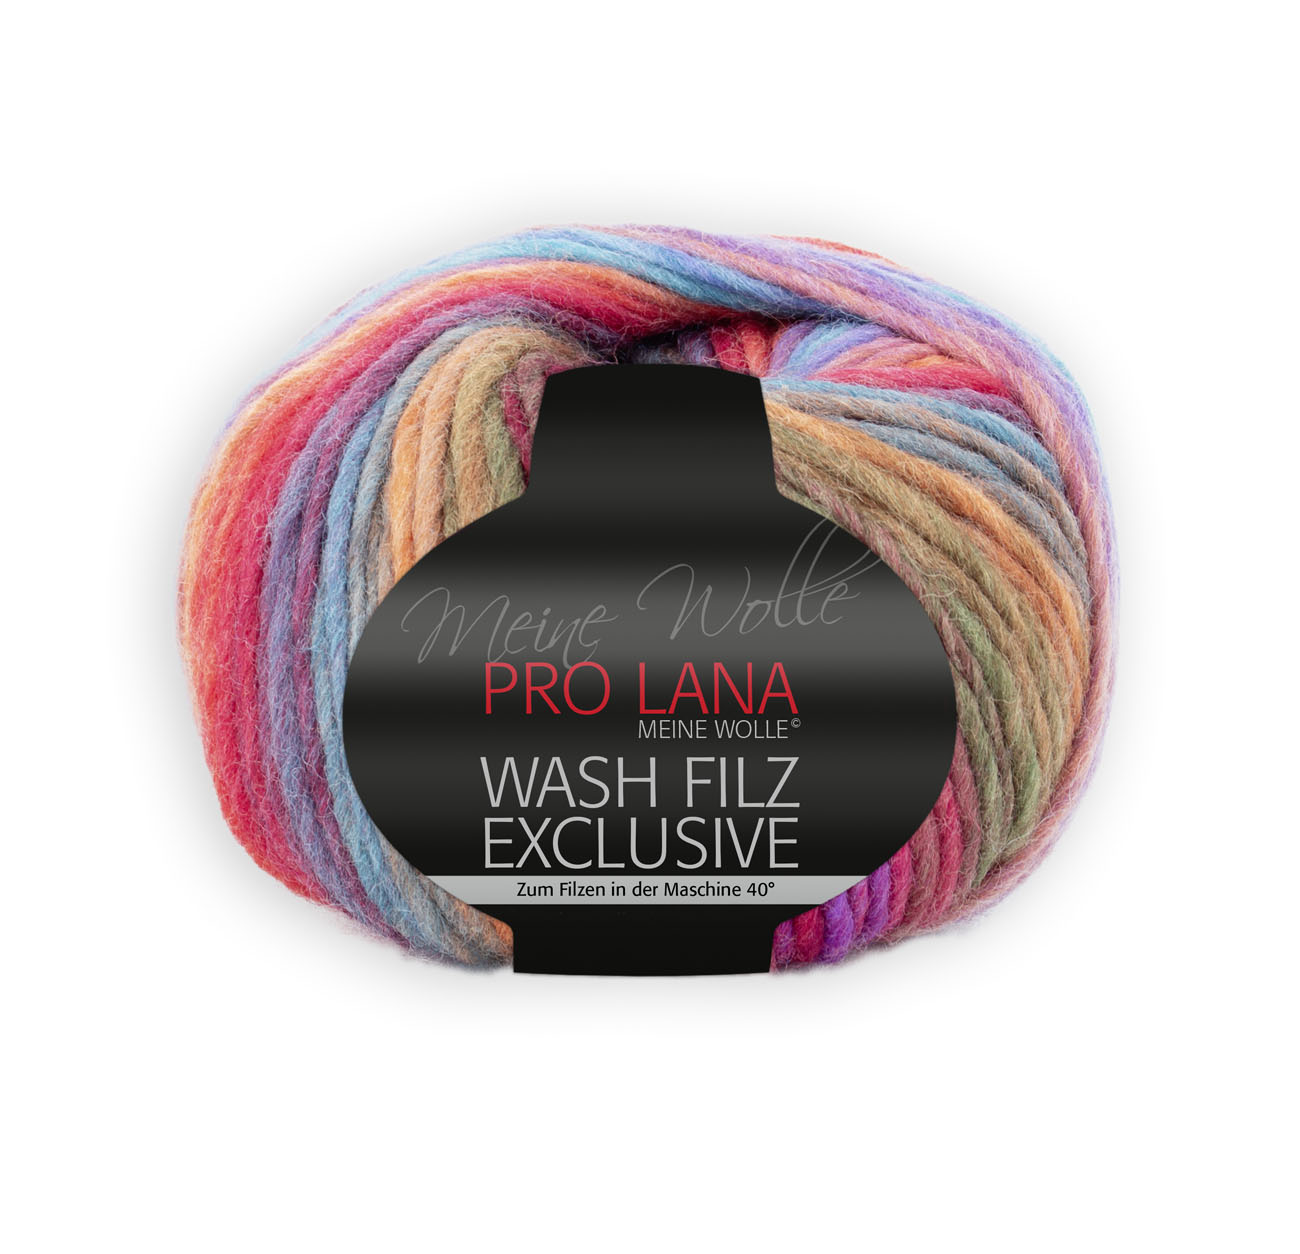 Pro Lana Wash-Filz Exclusive 100g 0,5kg